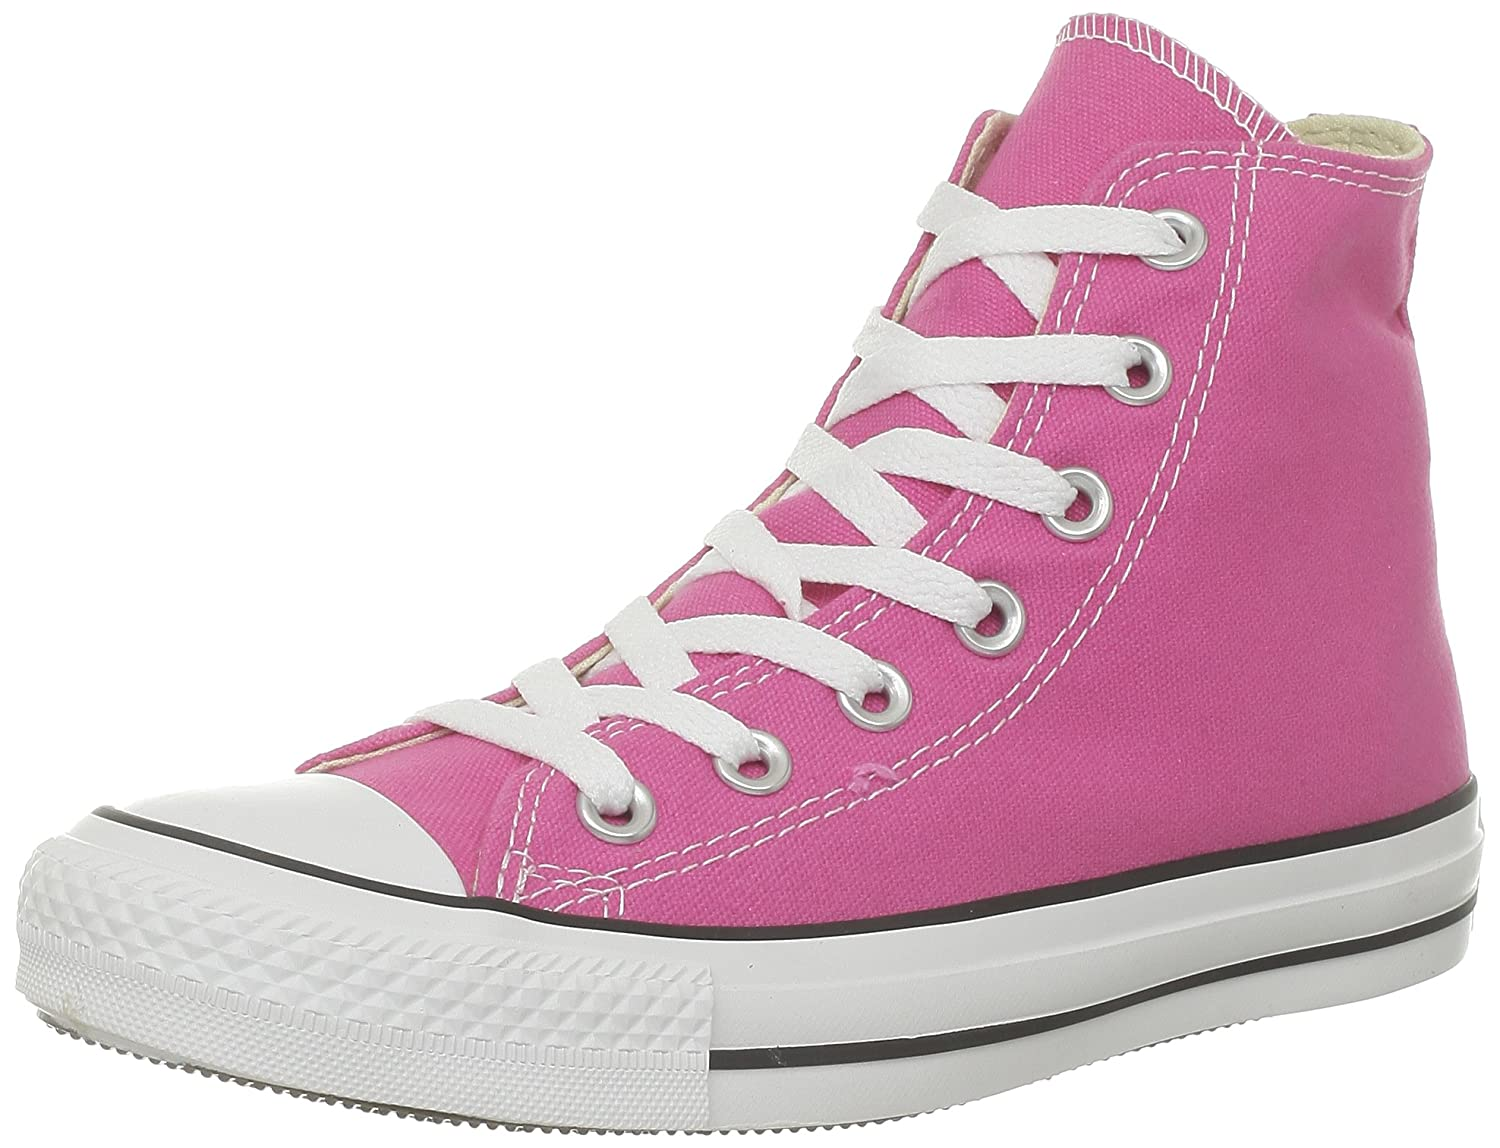 Converse Baskets Ctas 16990 Core Hi, Baskets mode mixte adulte adulte Rose (Rose Frais) f6d0b7c - boatplans.space